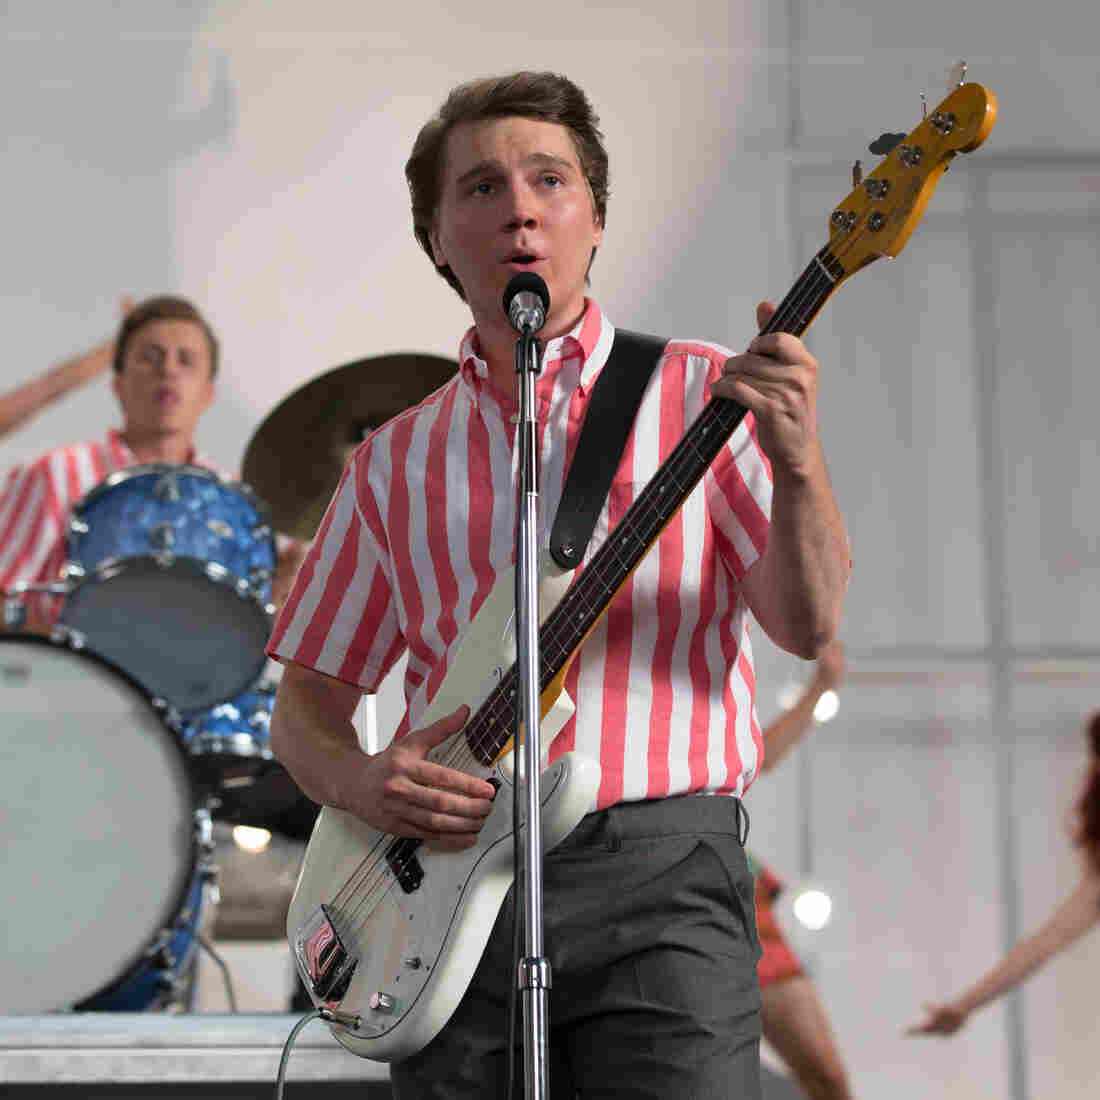 A Simplified Brian Wilson In 'Love And Mercy'